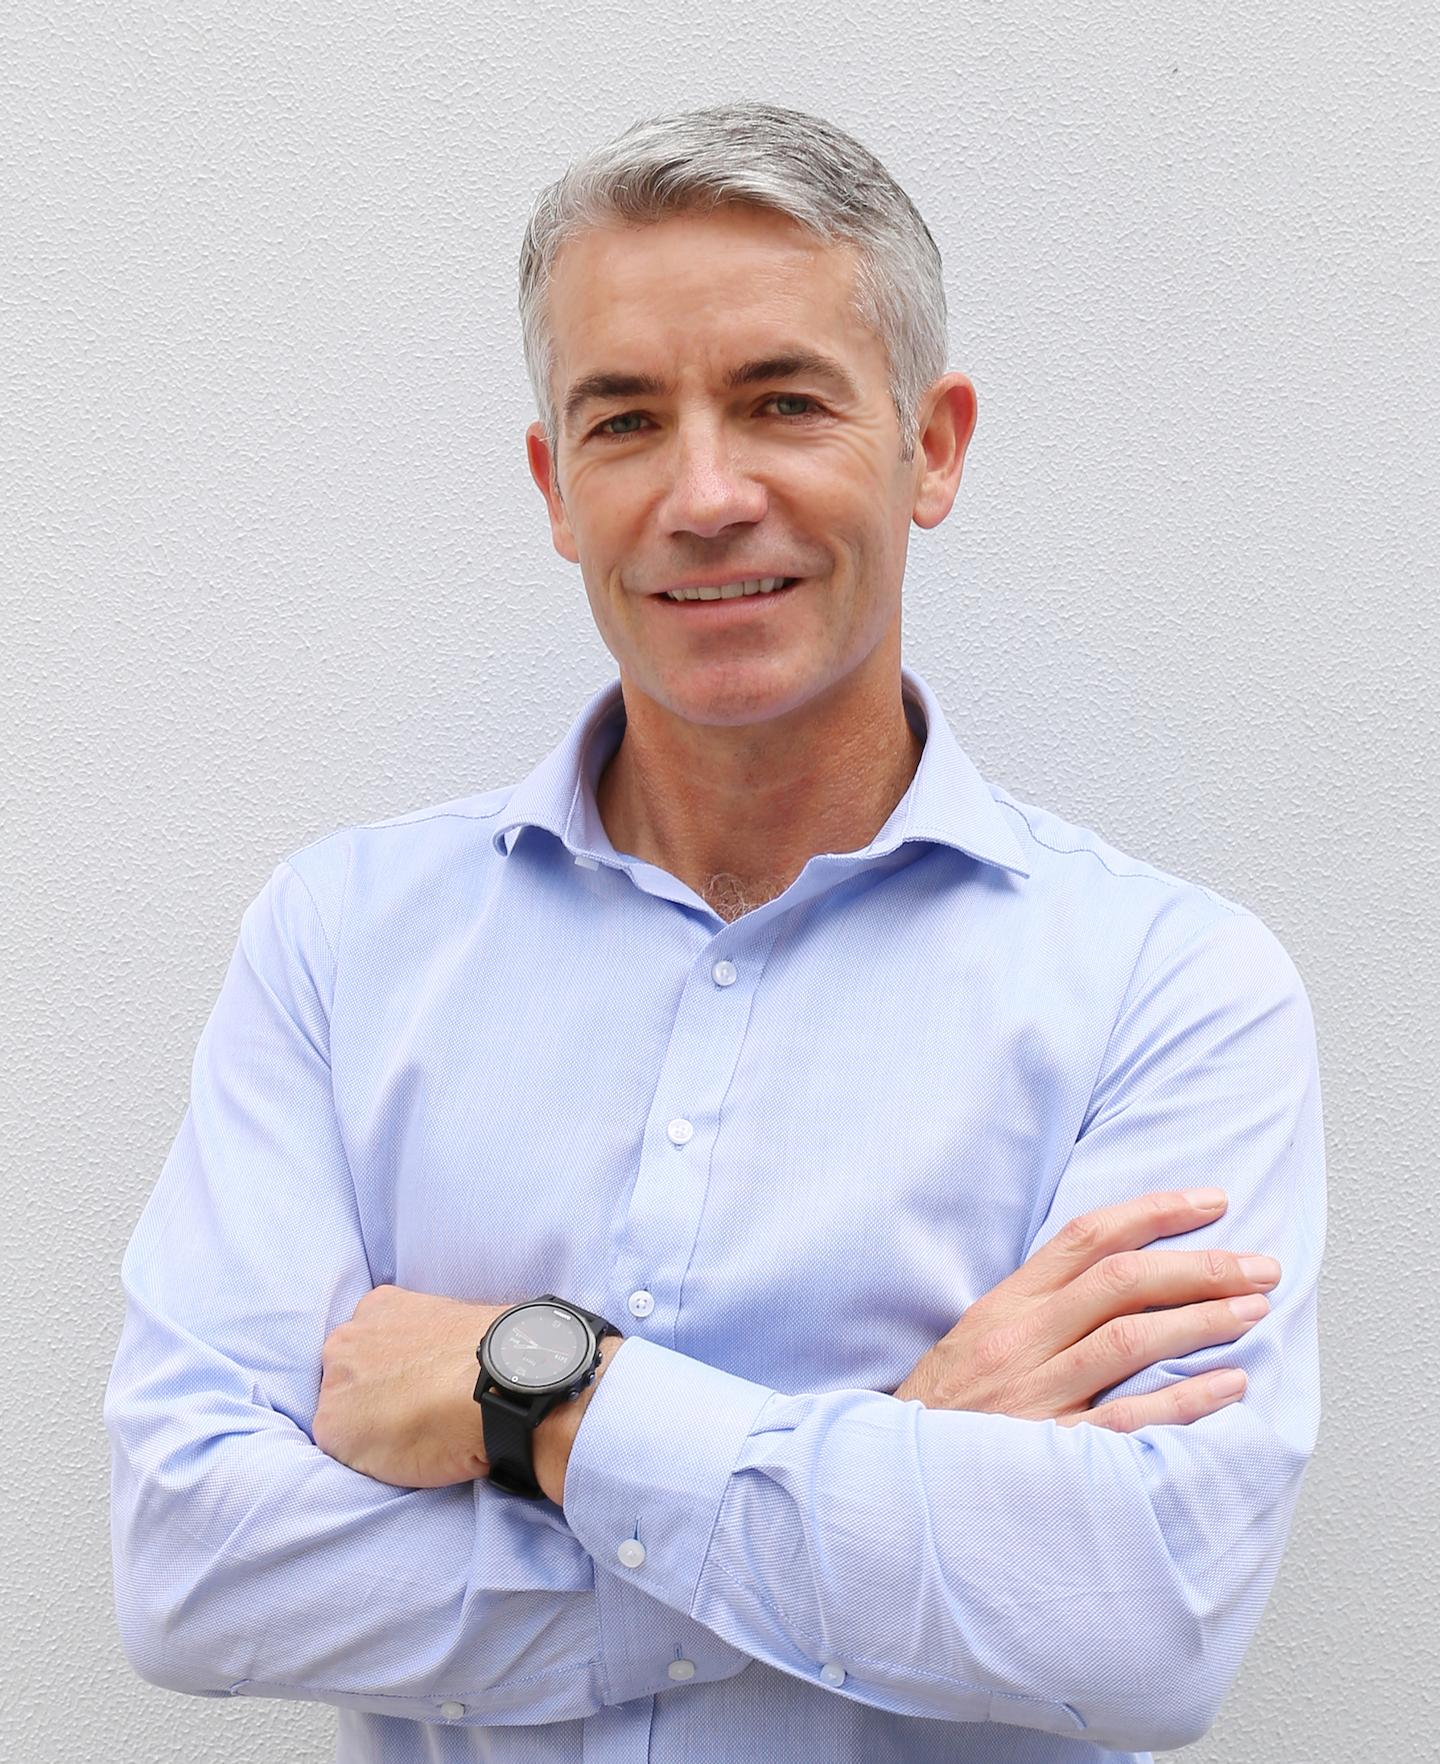 Waring spent five years with Six Senses Hotels, Resorts & Spas in Bangkok as managing director and chief operating officer